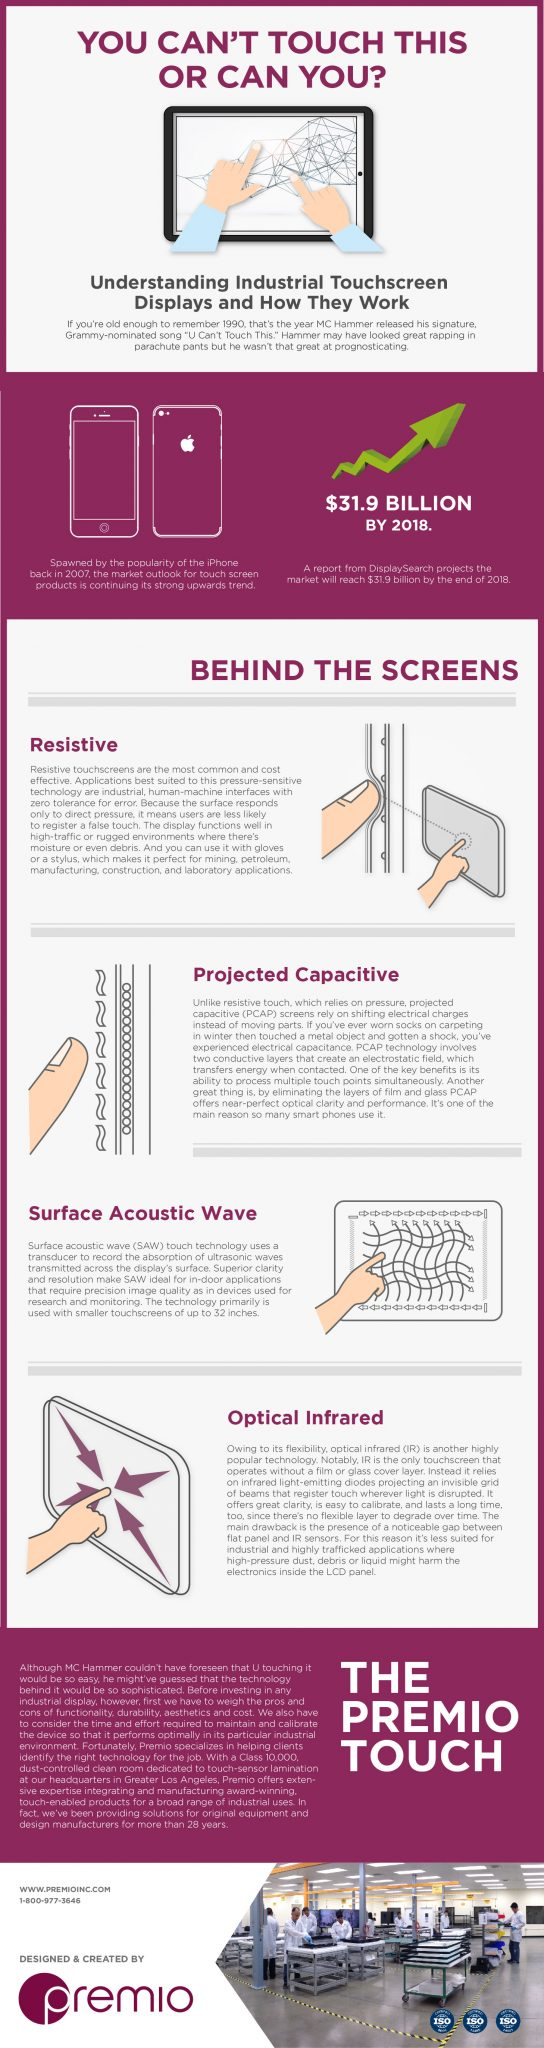 Infographic of different touch screen technologies and how they work